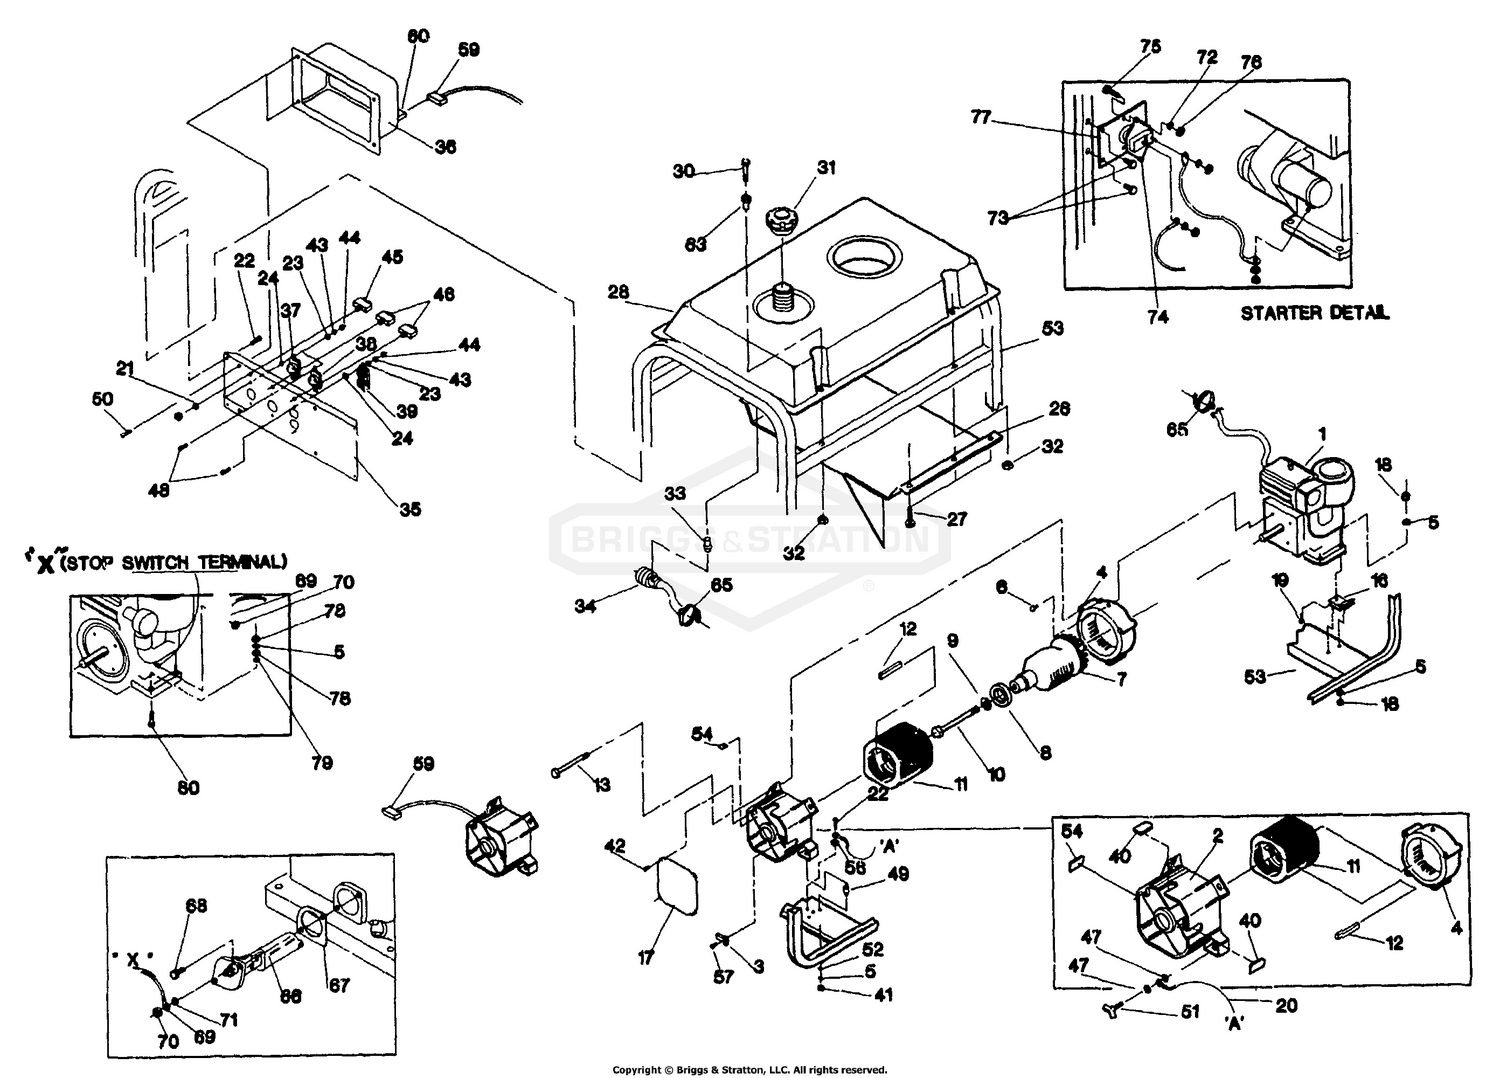 Briggs Amp Stratton Power Products Del 26072017021729 9799 1 65795gs Rectifier Wiring Diagram Svp 5000e Ac Generator 10 Hp Bs Electrical Start Engine No 92422